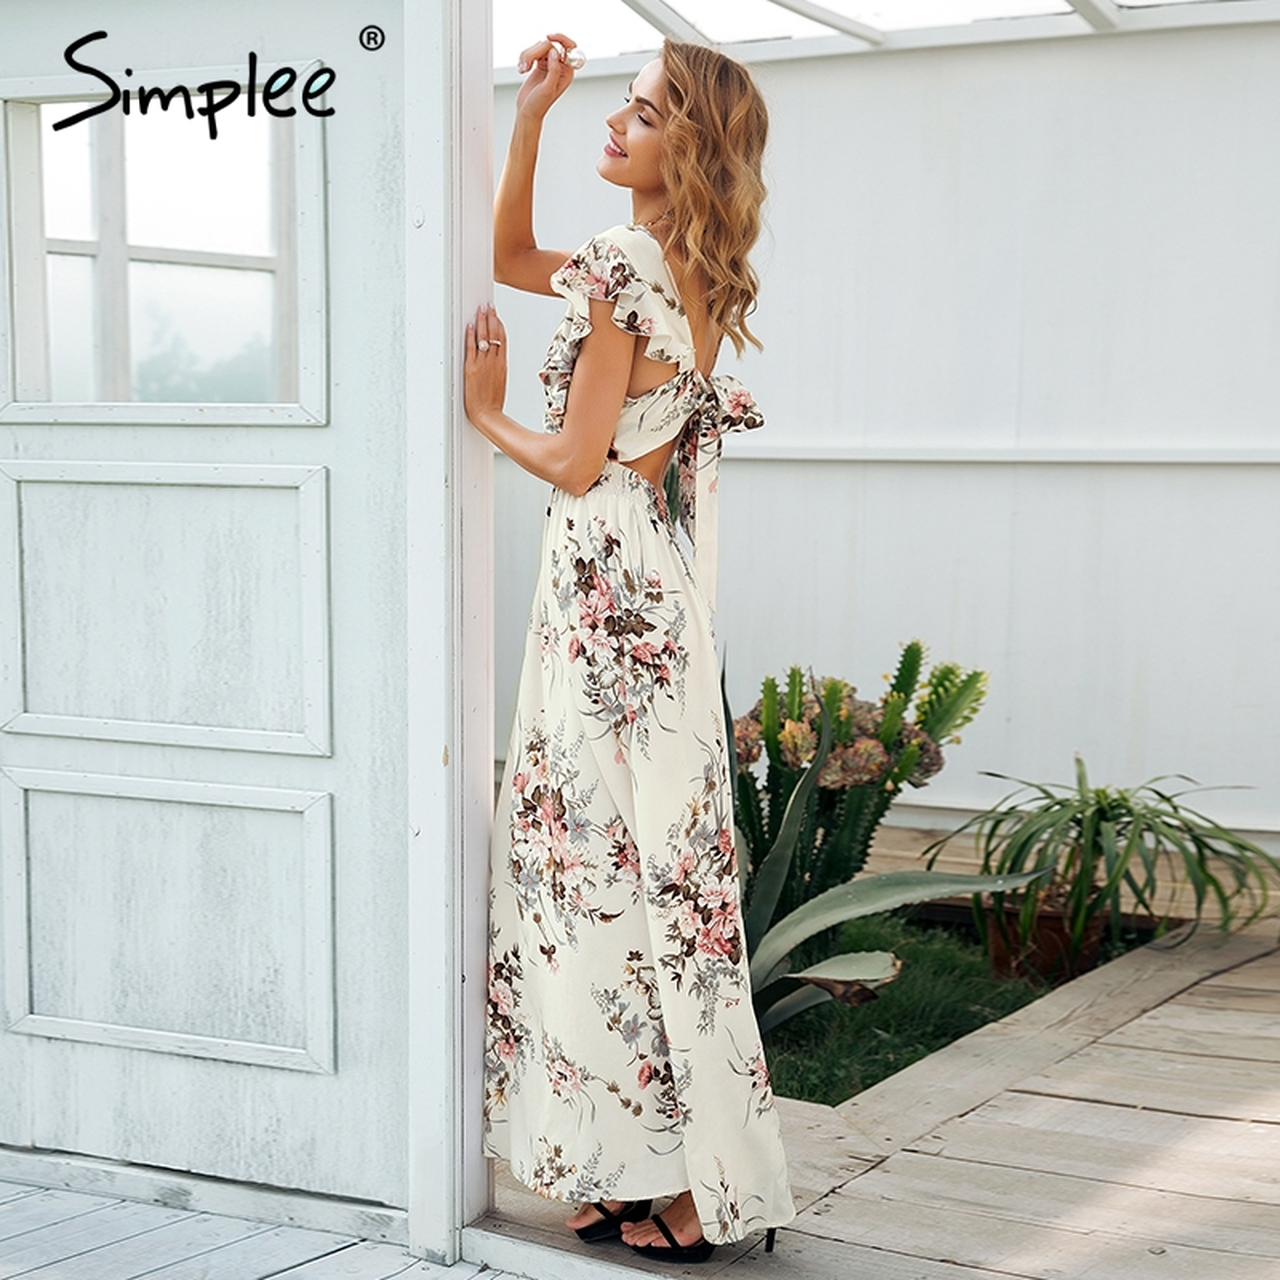 32ff69a569fef Simplee Ruffle backless bow print long dress Women v neck tie up summer  dress female Casual beach chic boho maxi dress vestidos